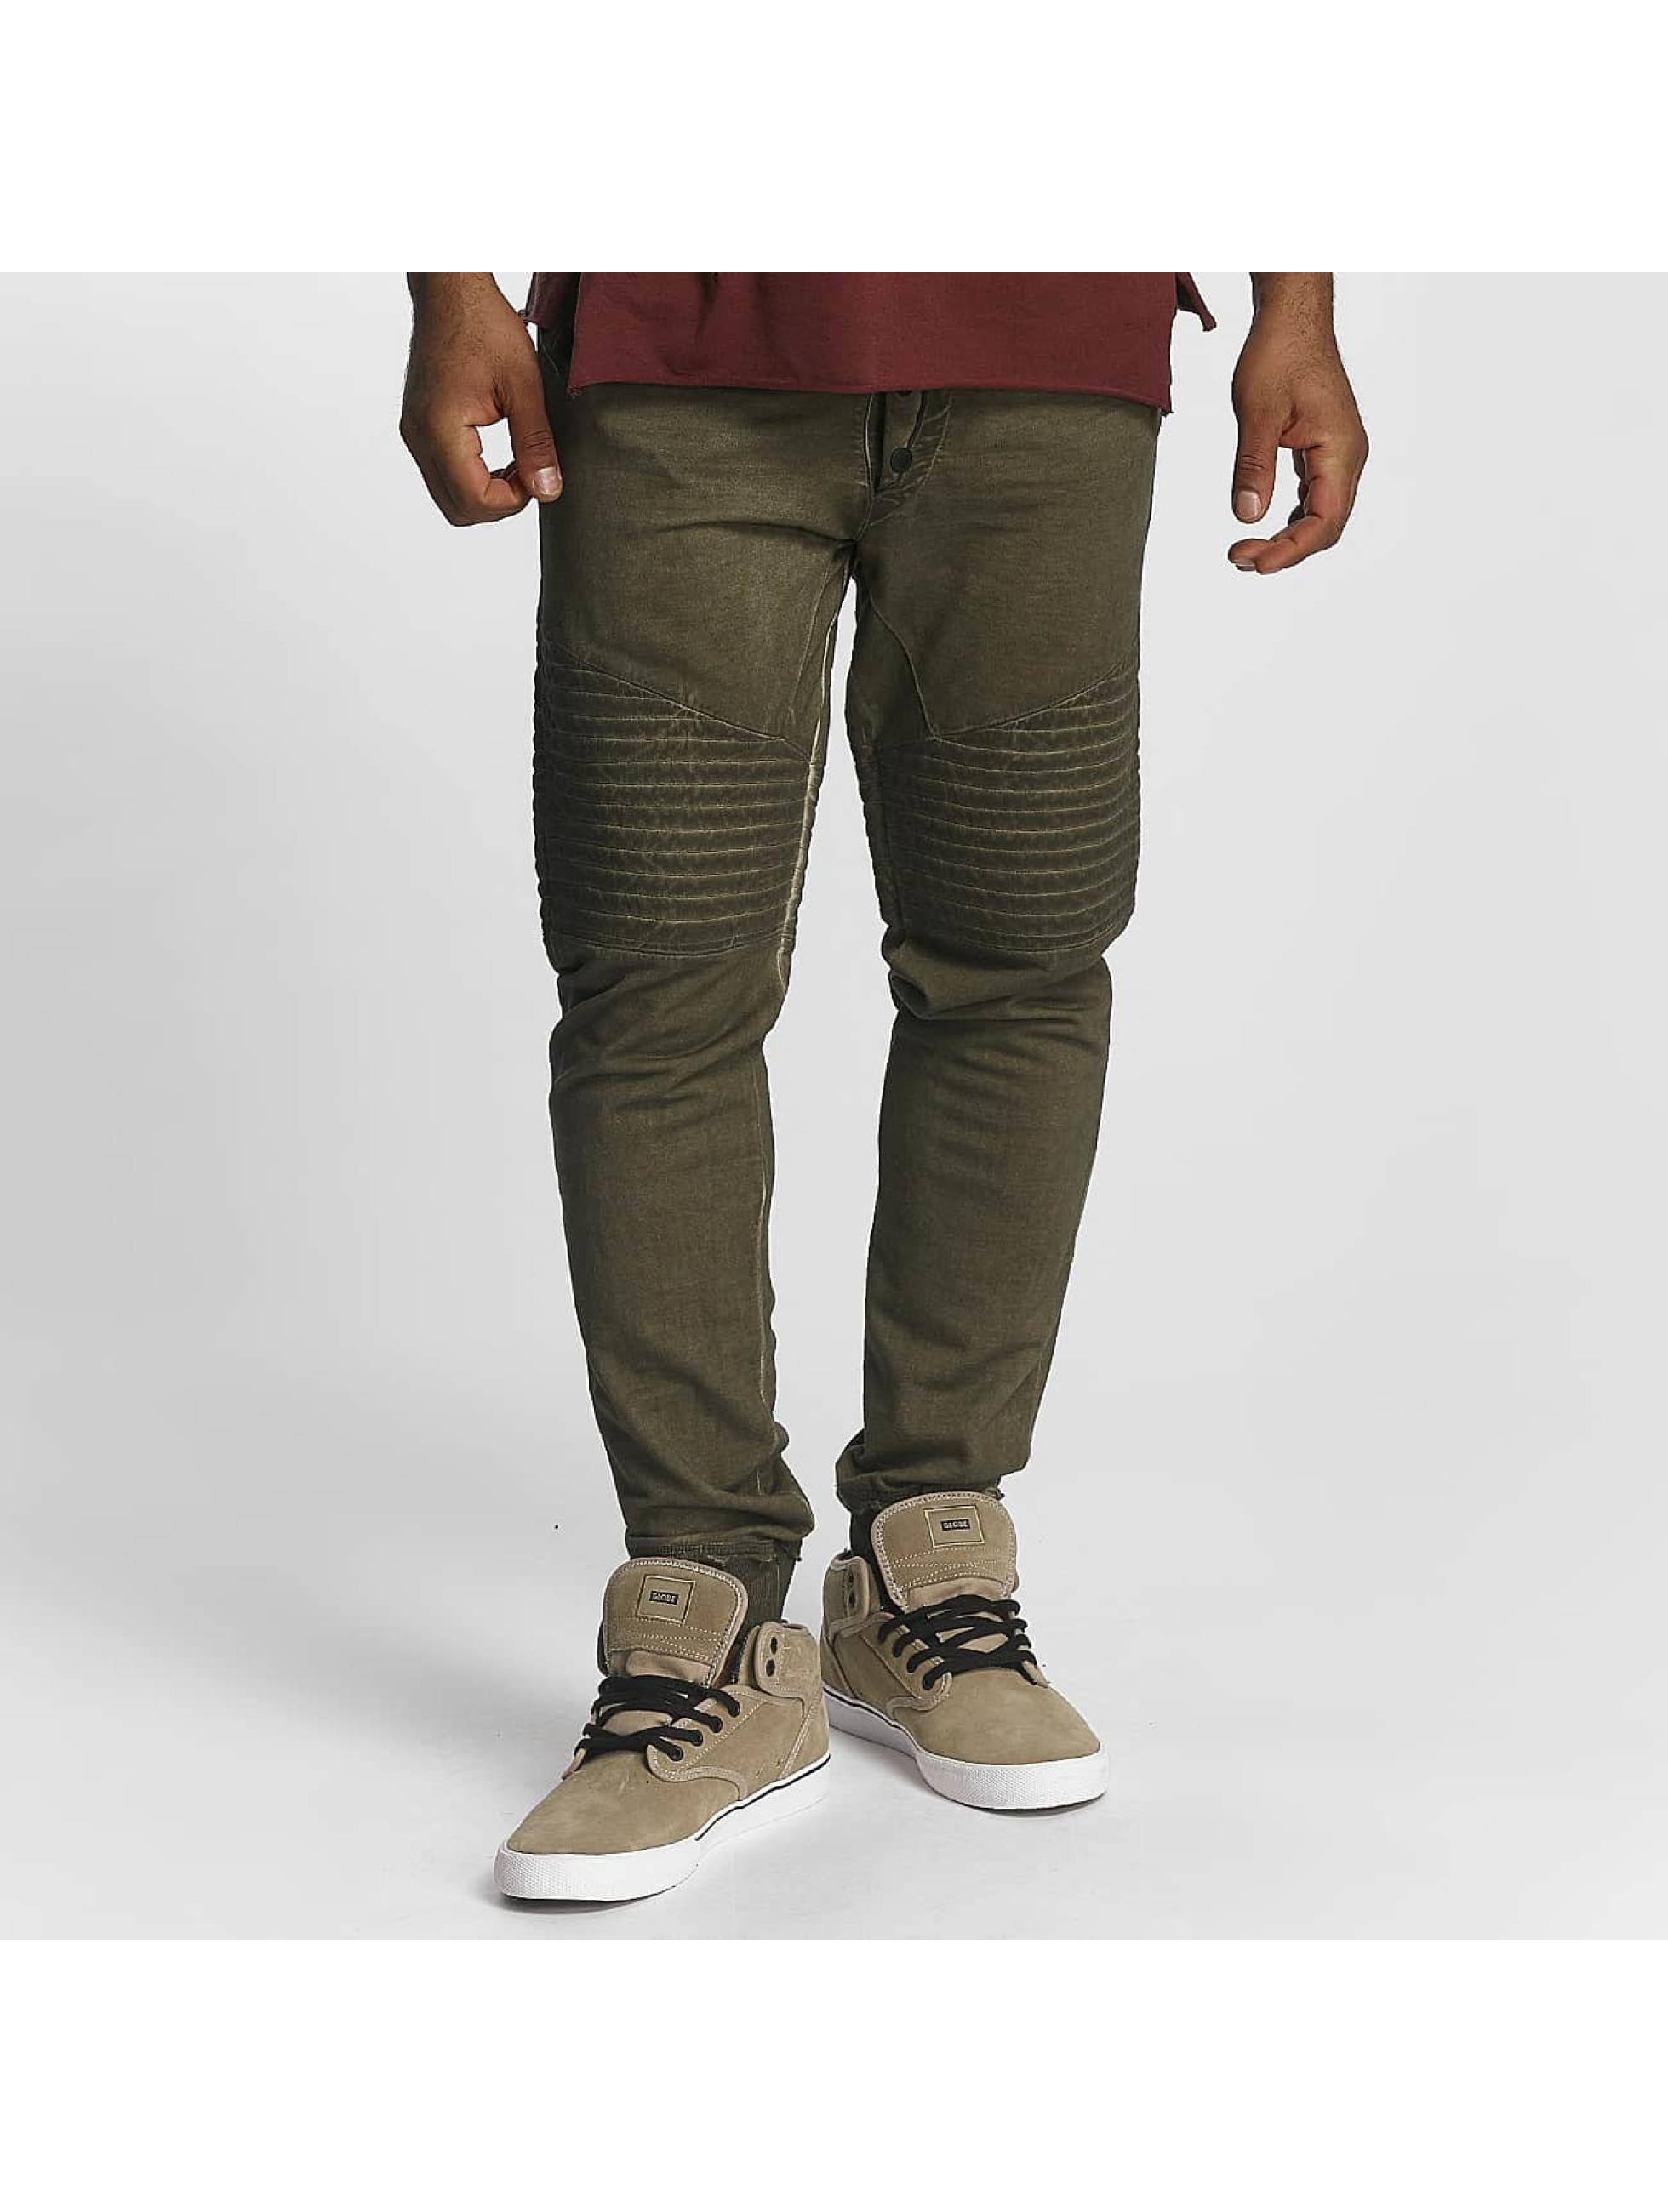 trueprodigy Männer Jogginghose Stiched in olive